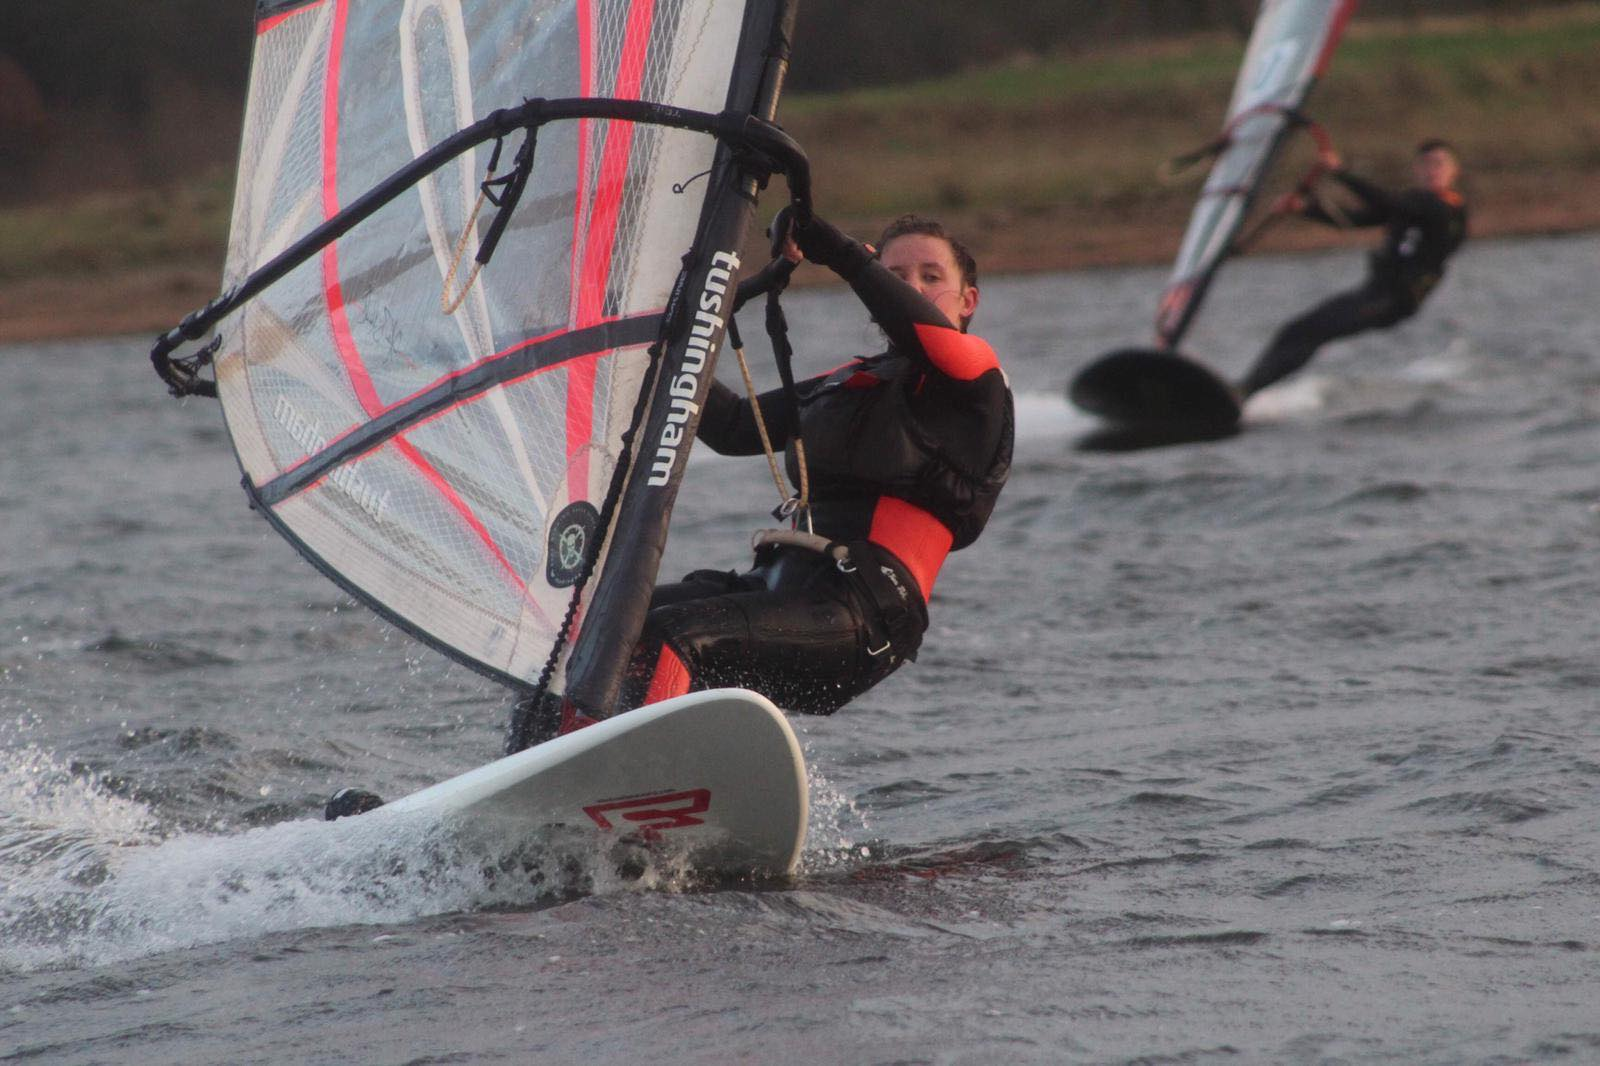 Junior_windsurfing_at_Burton_Sailing_Club.jpg